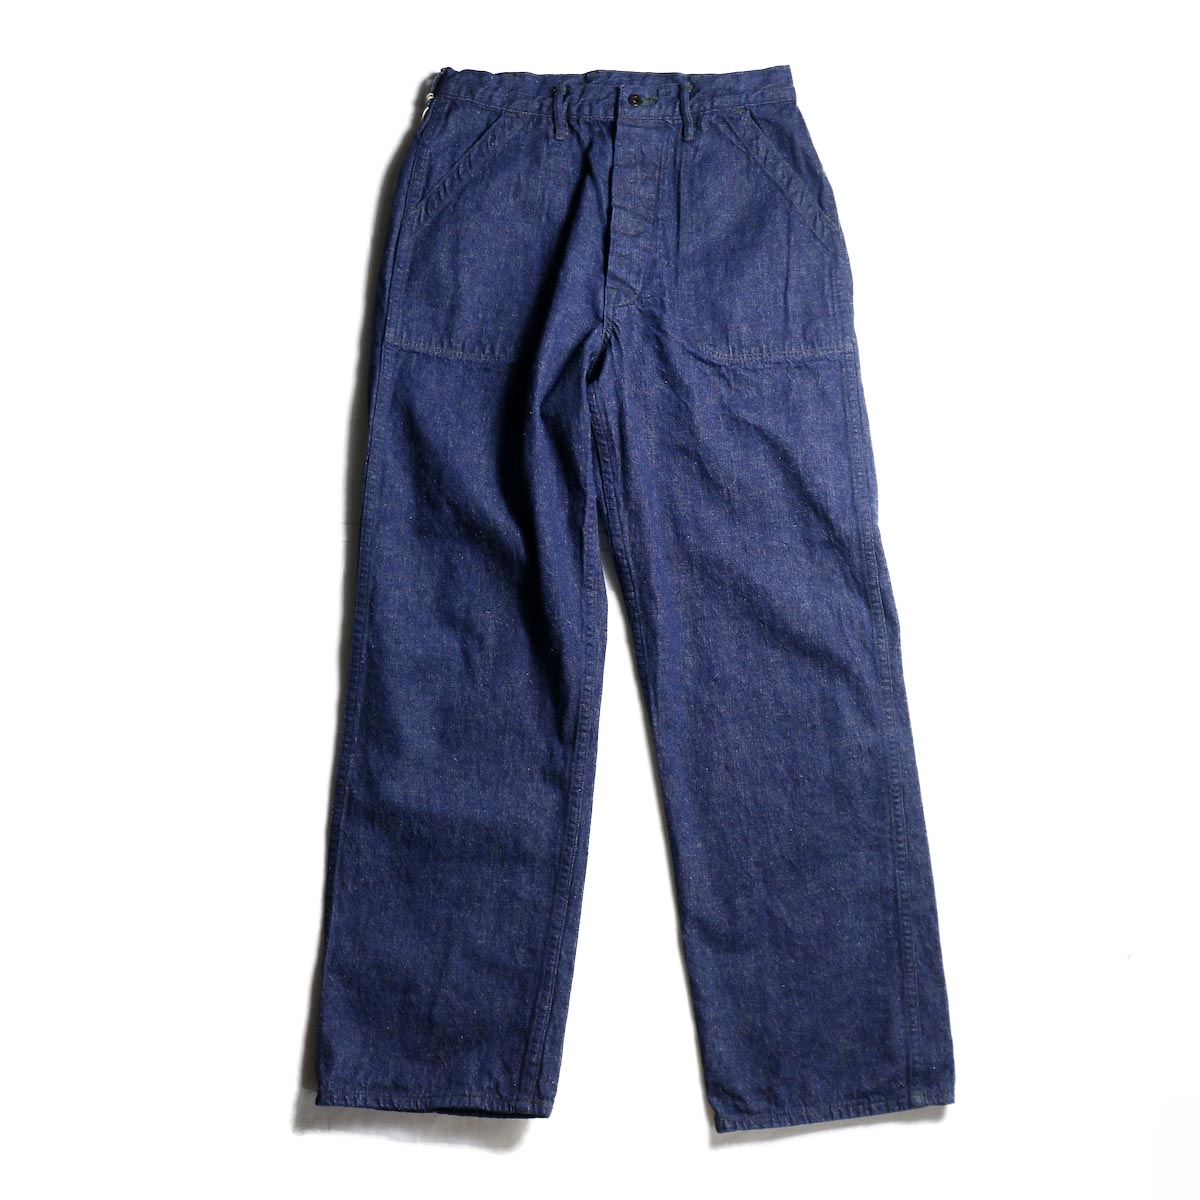 orSlow / US NAVY UTILITY PANTS (ONE WASH)